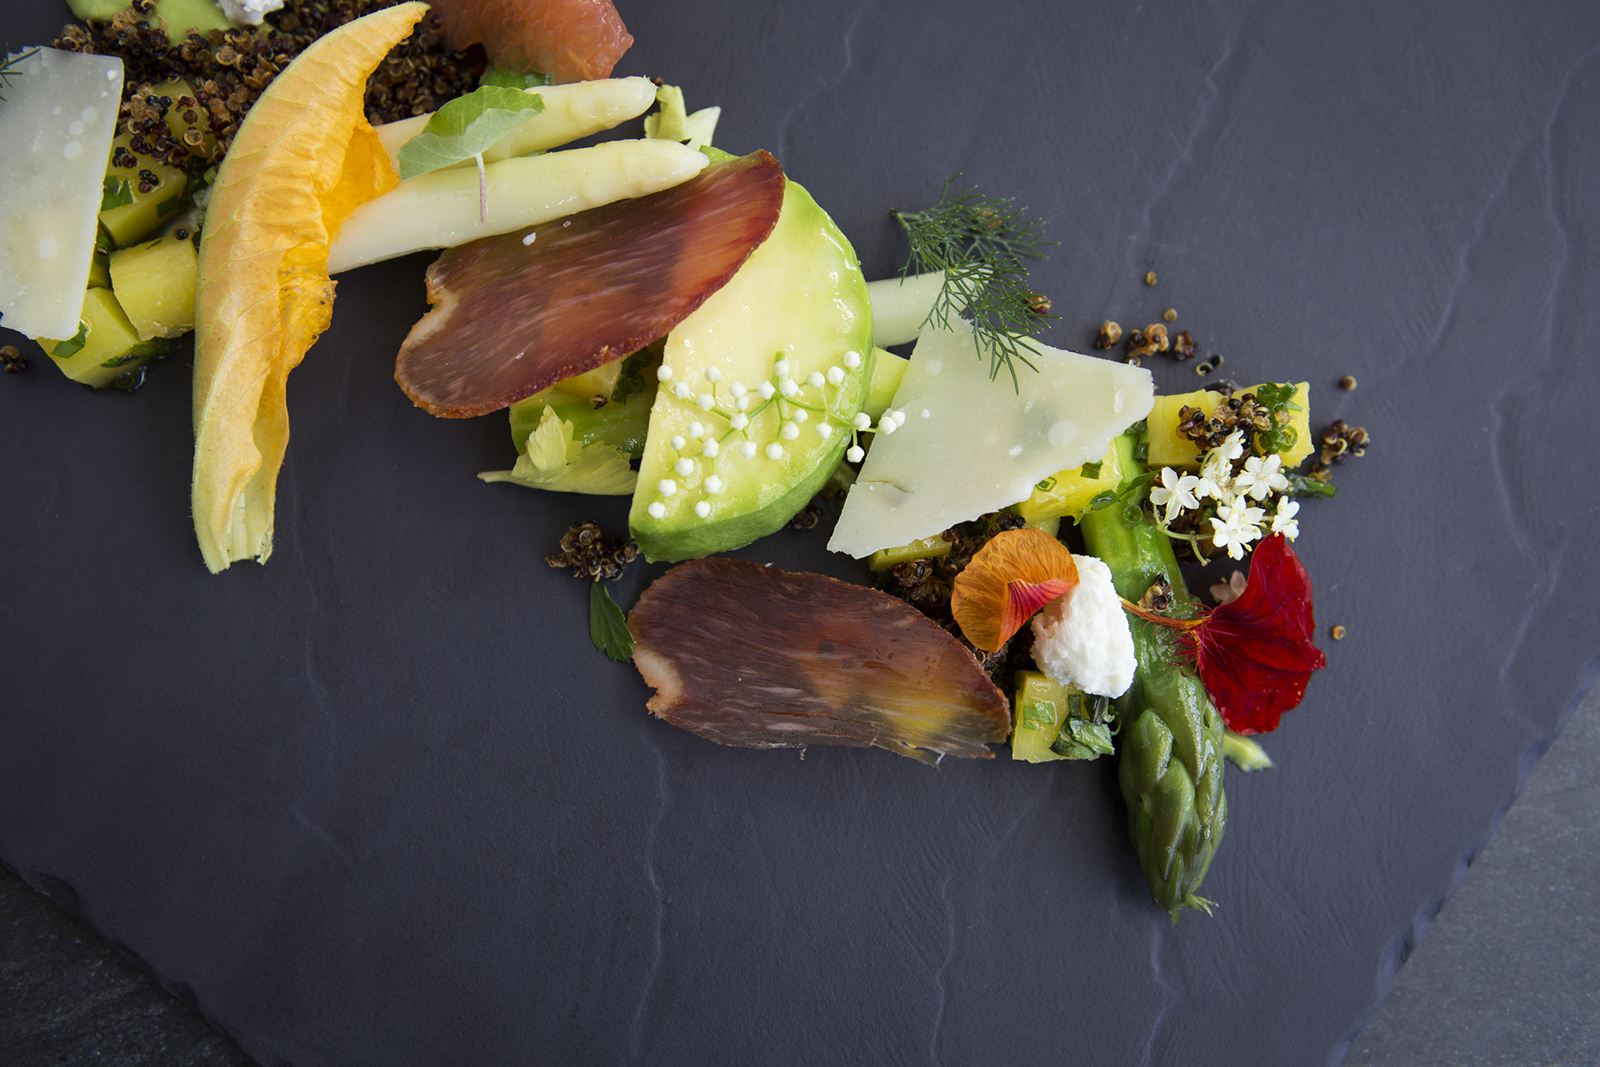 Creative display of vegetables on a plate.